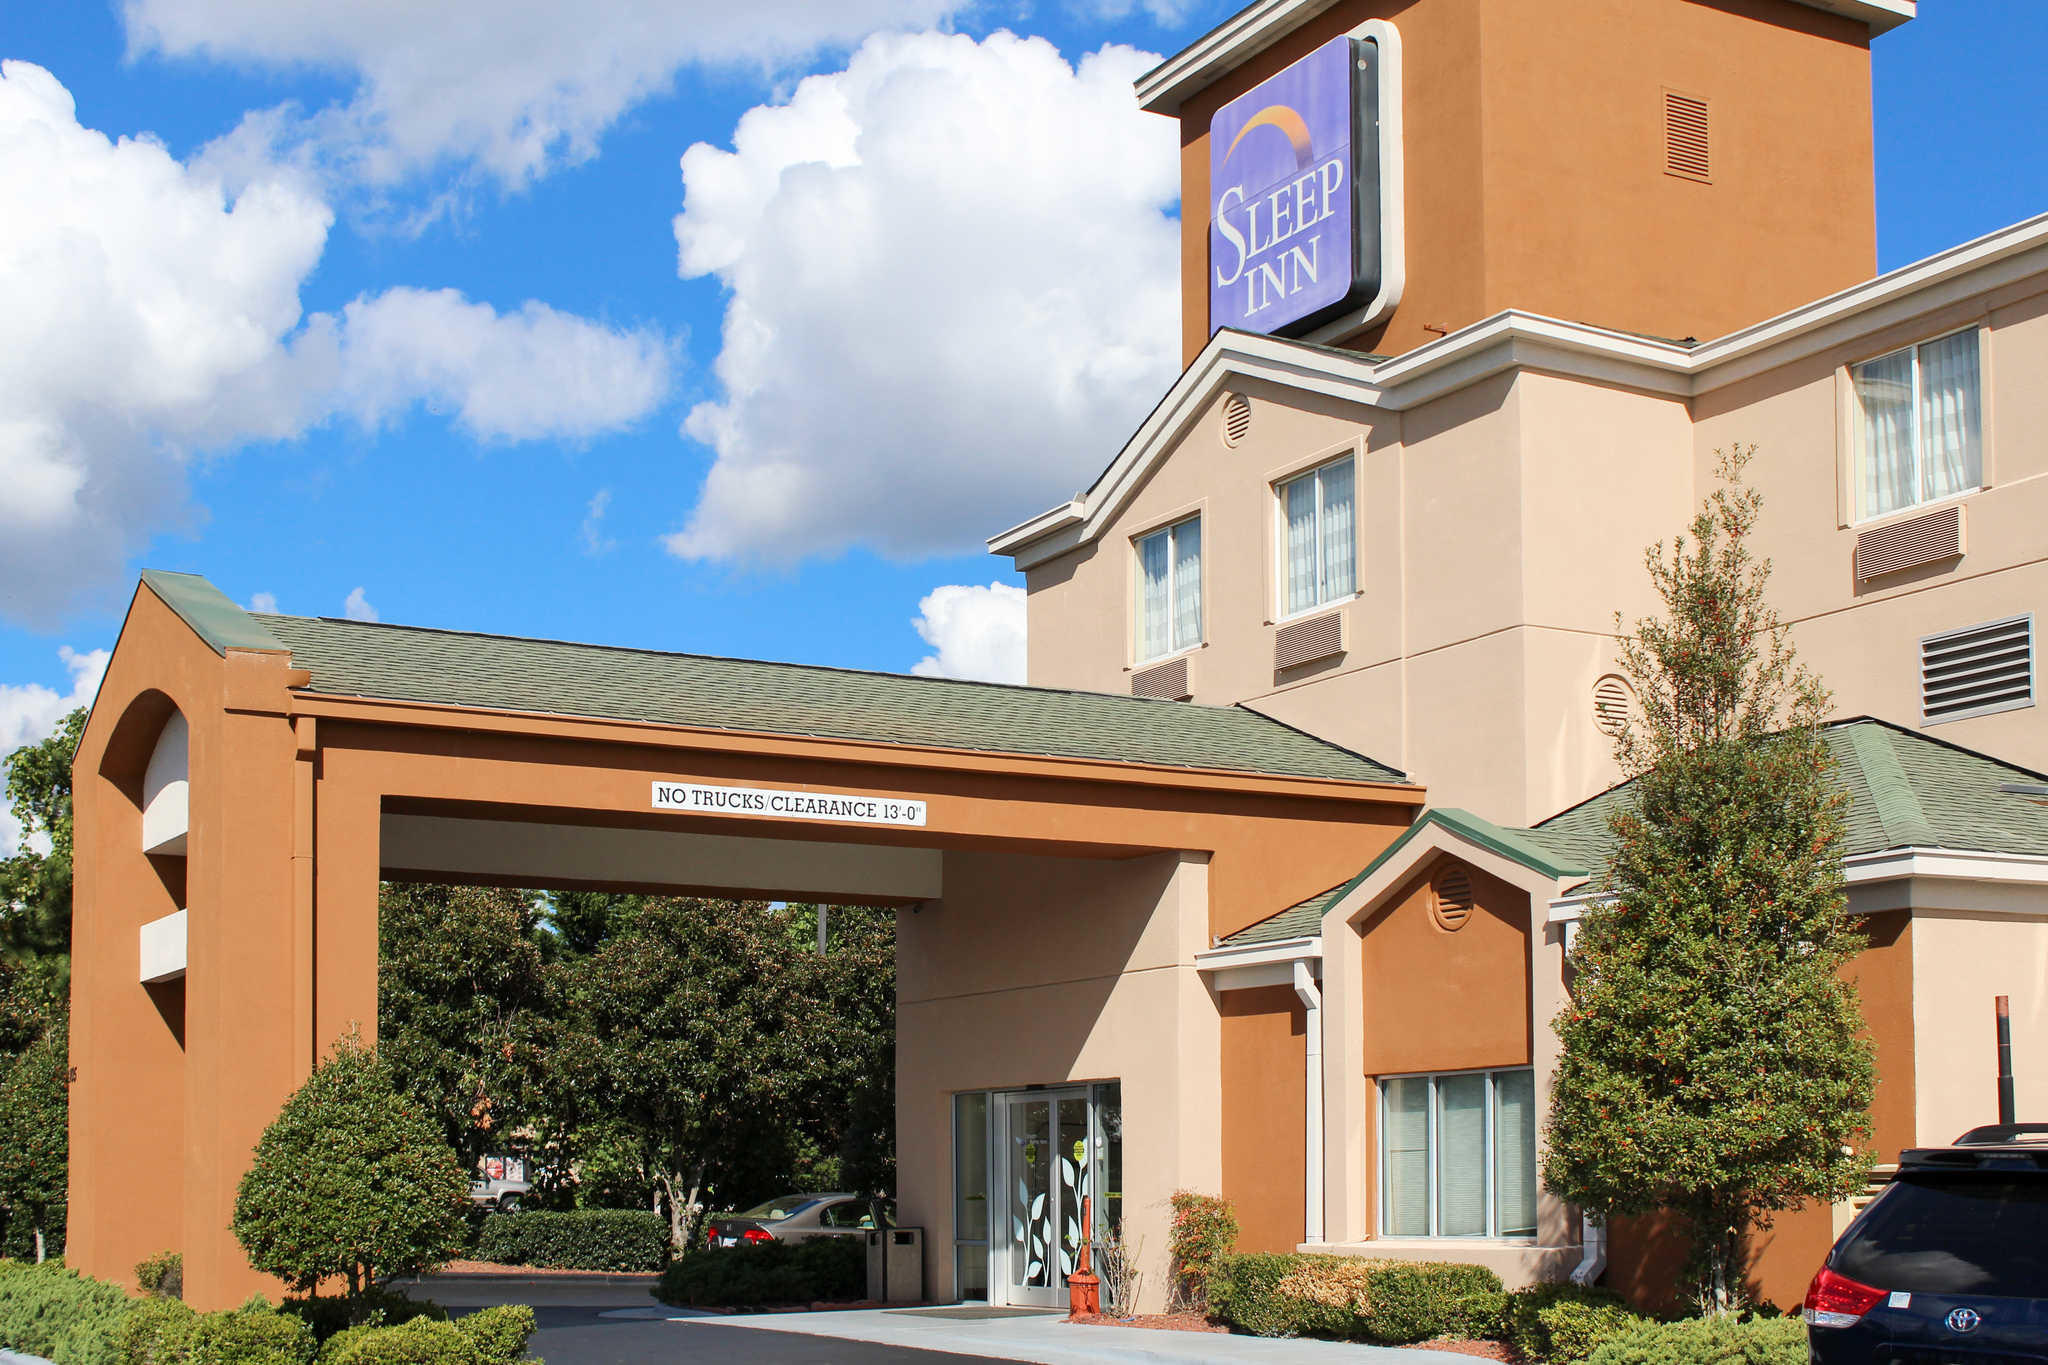 Sleep Inn image 0